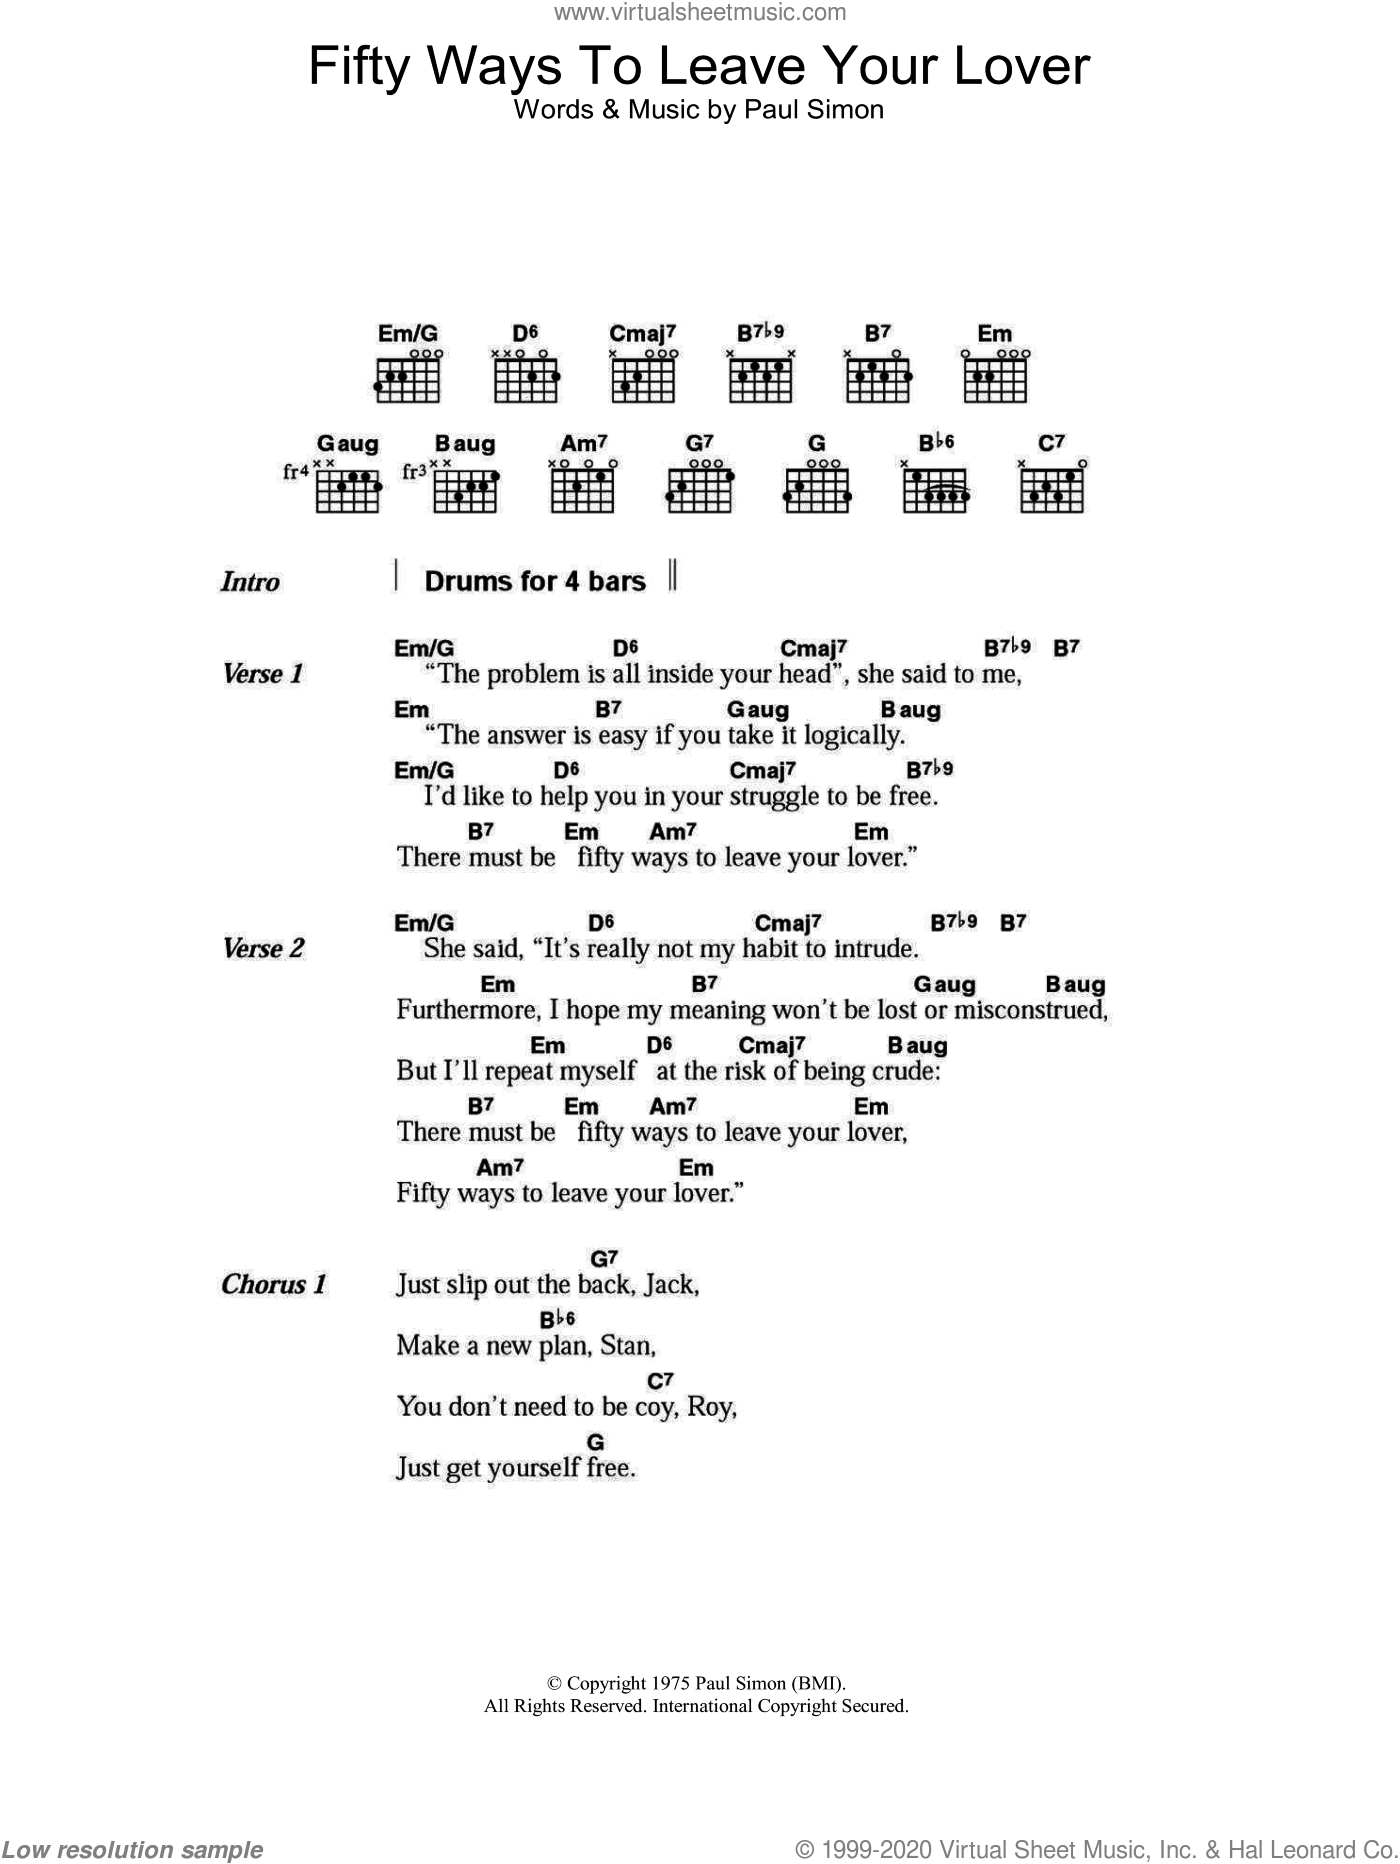 Fifty Ways To Leave Your Lover sheet music for guitar (chords) by Paul Simon